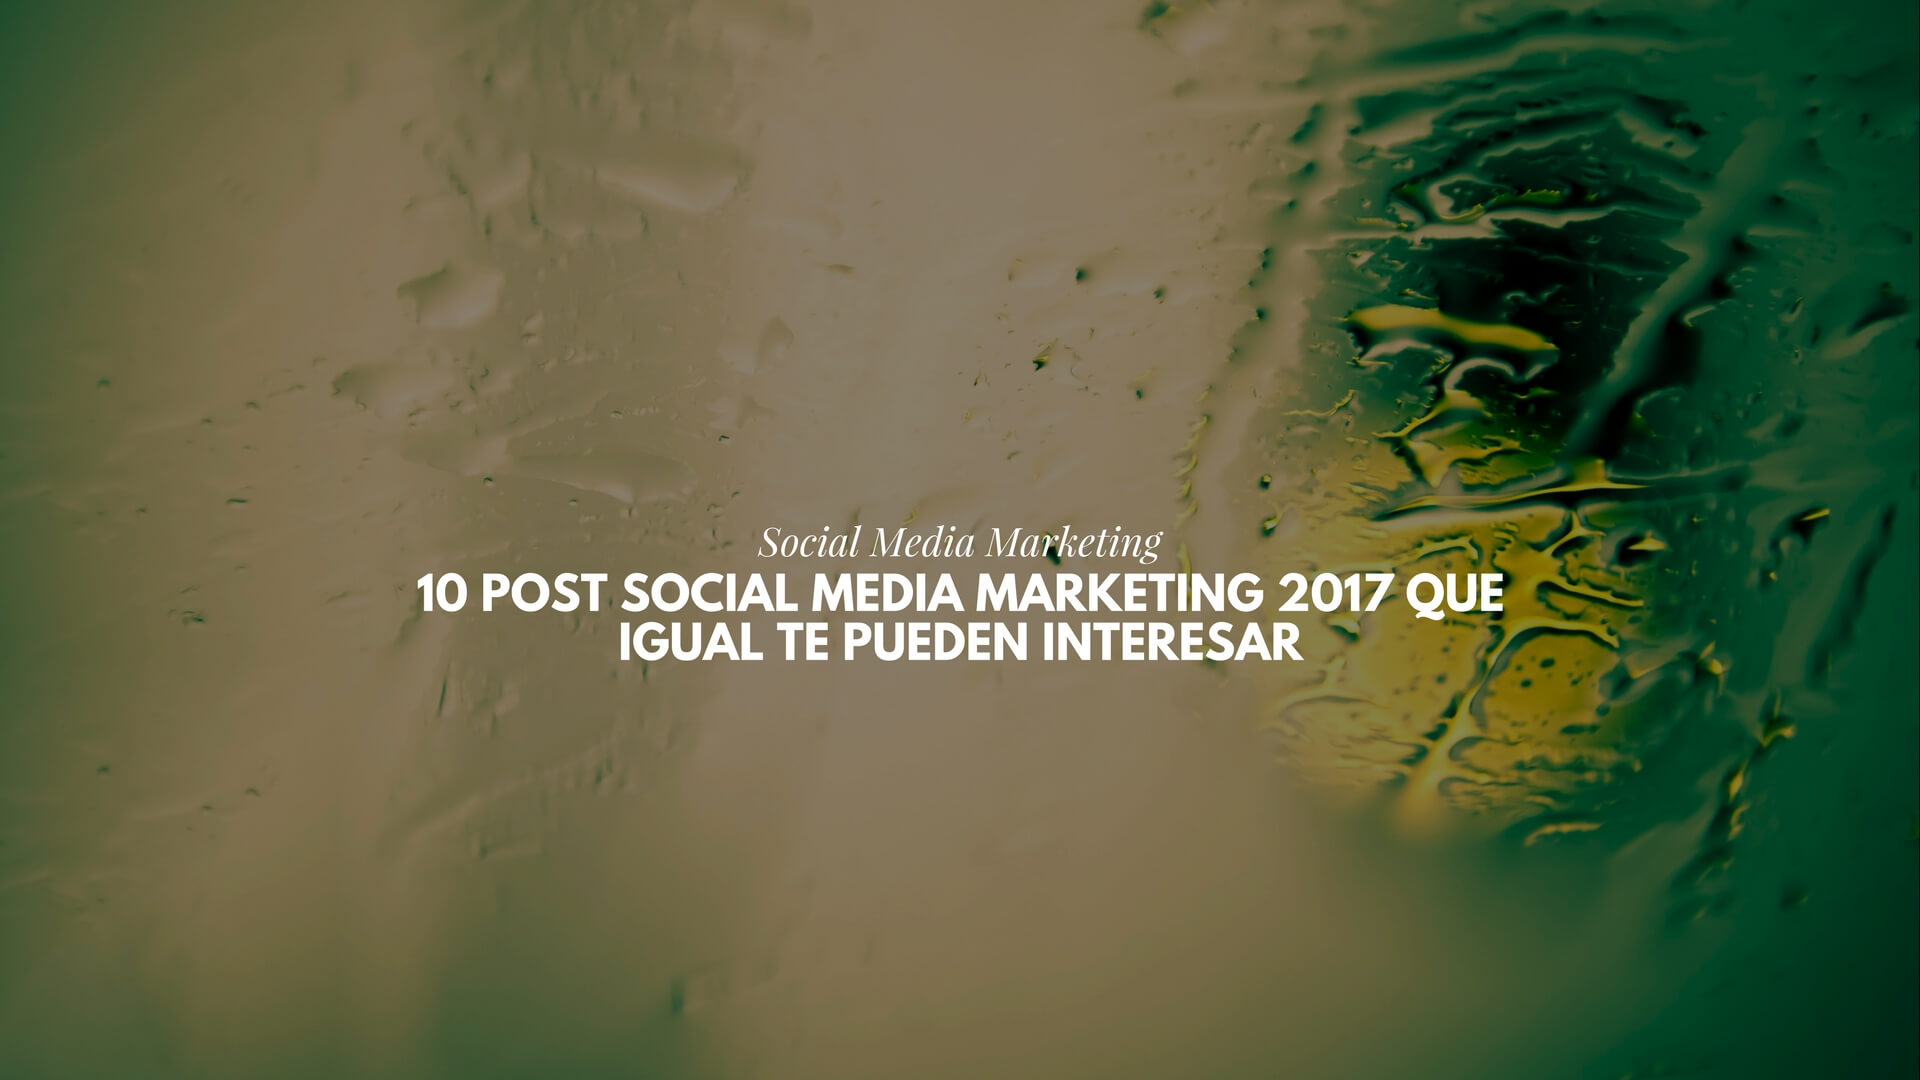 10 post Social Media Marketing 2017 que igual te pueden interesar